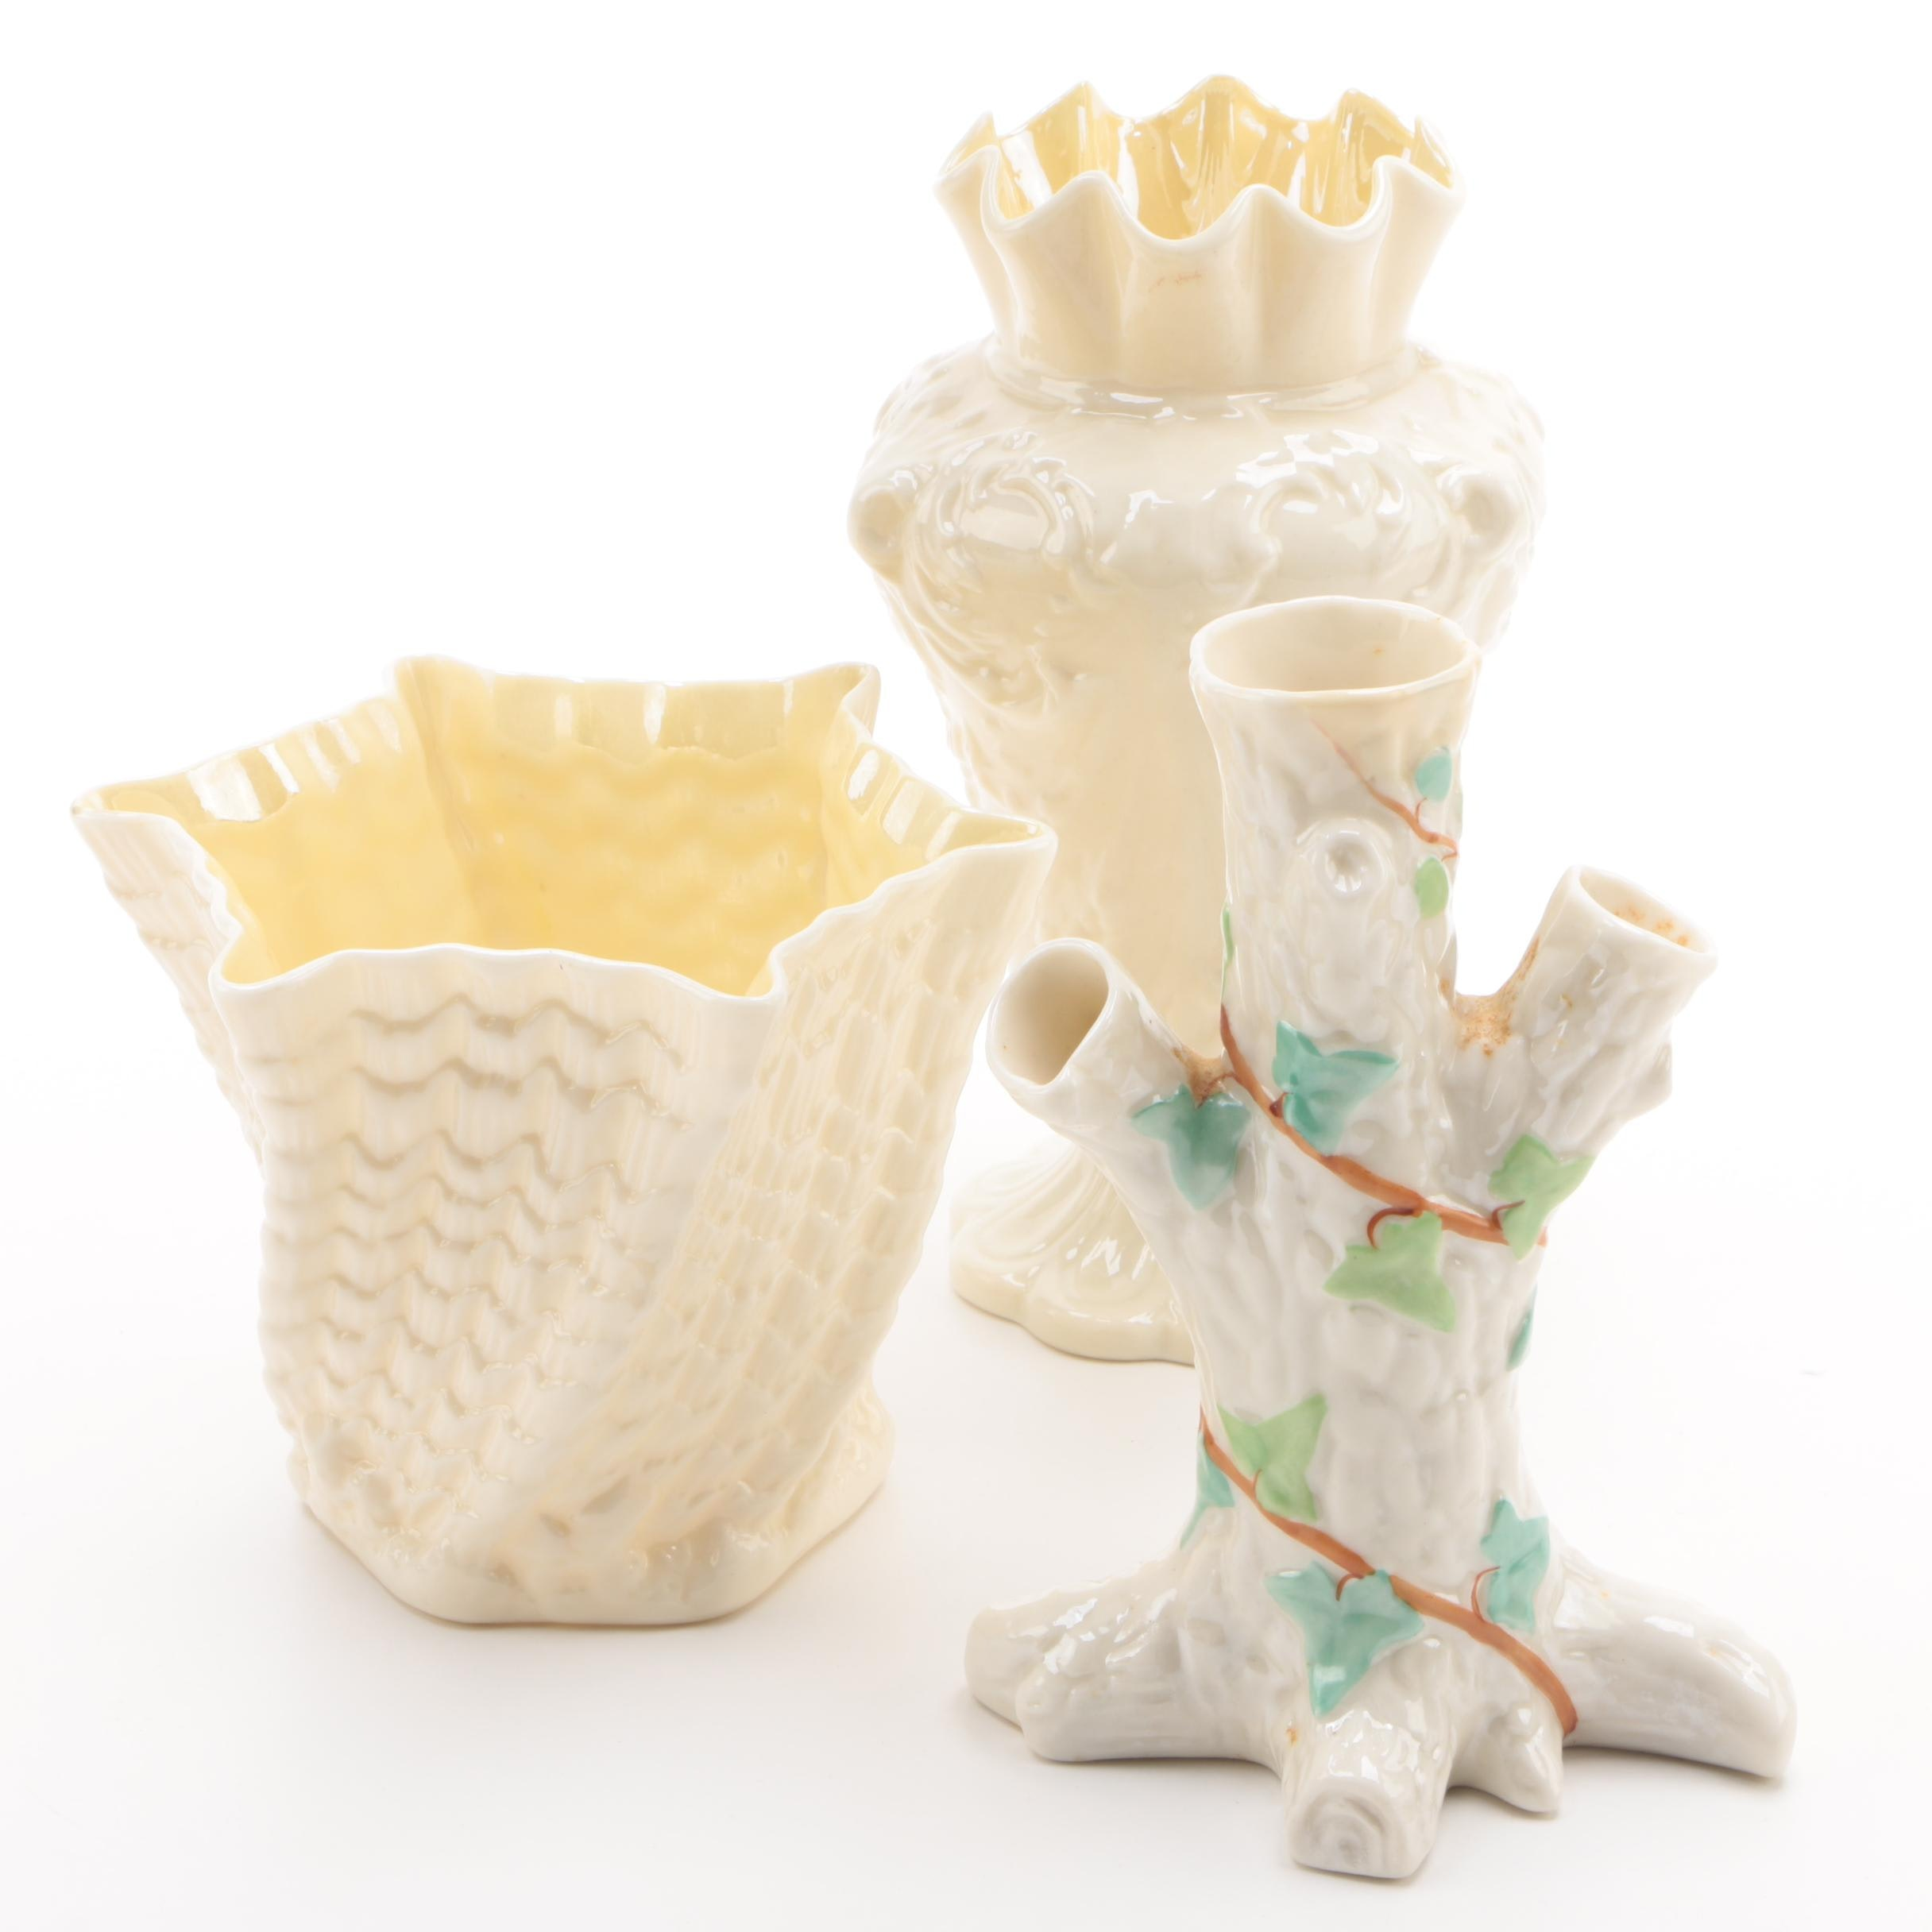 Assorted Belleek Porcelain Including a Tree Trunk Spill Vase, Late 19th Century